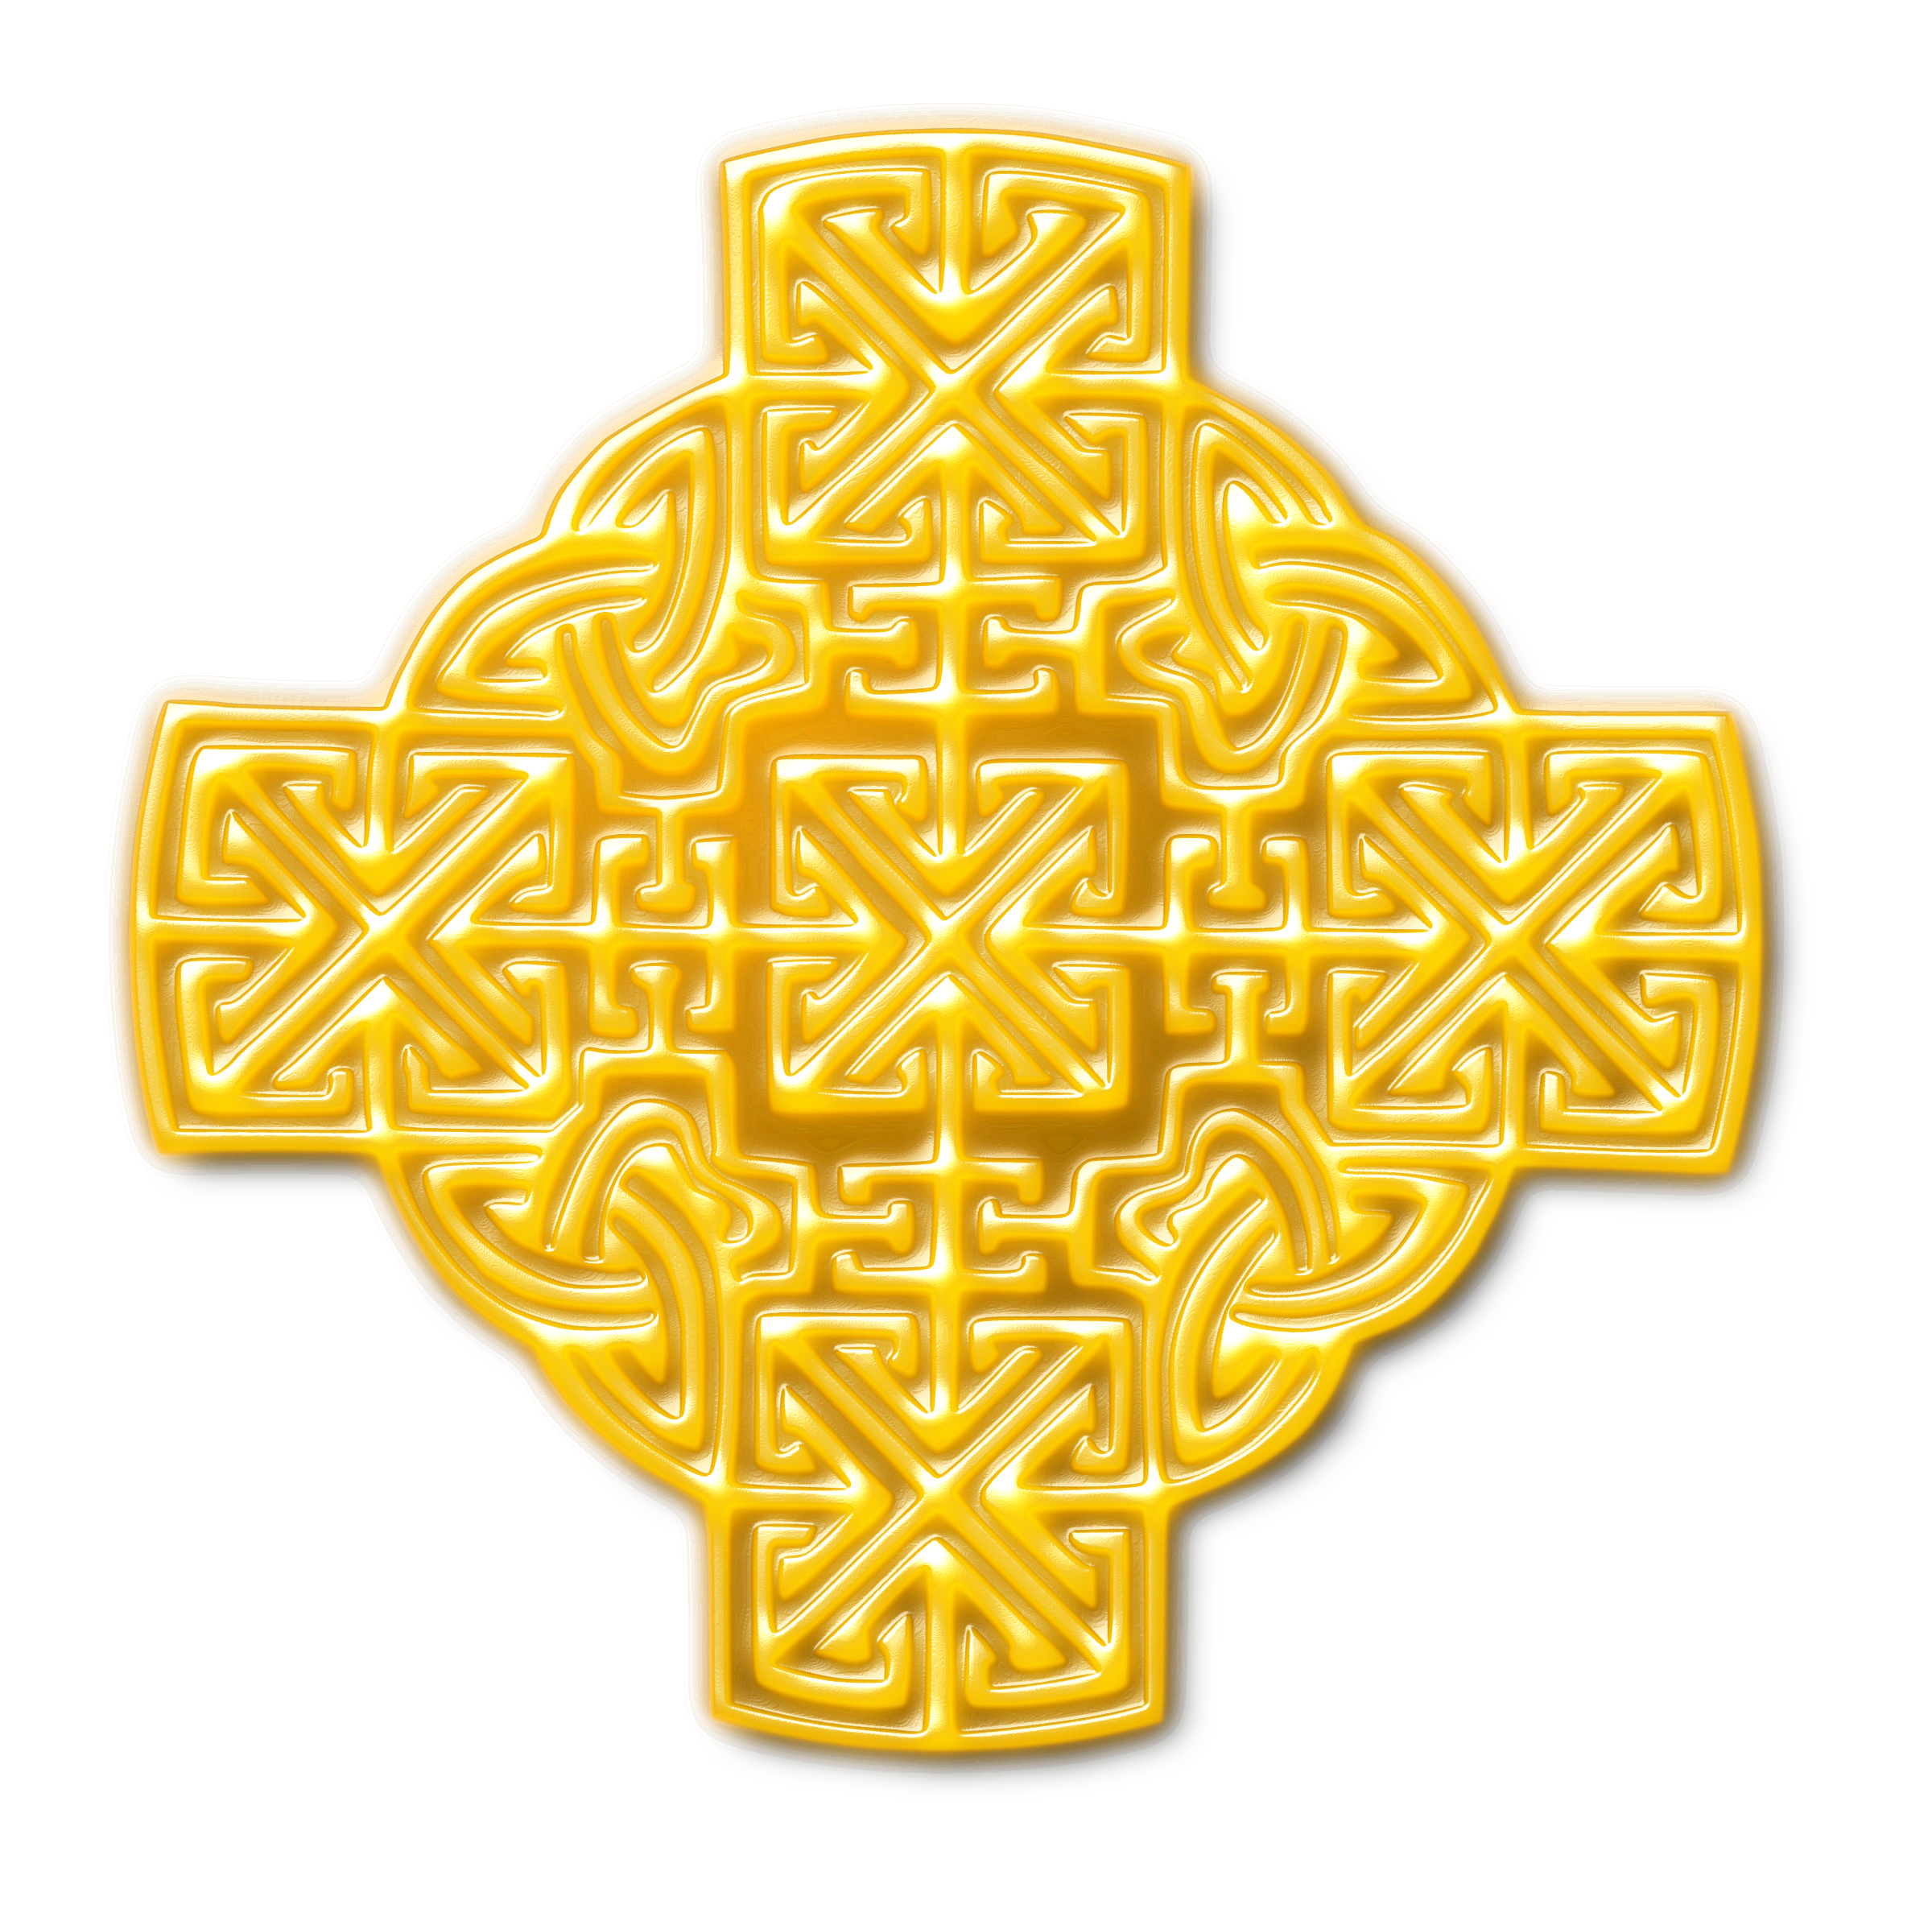 Celtic cross gold clipart clip free stock Clipart - Celtic-inspired design (gold) clip free stock